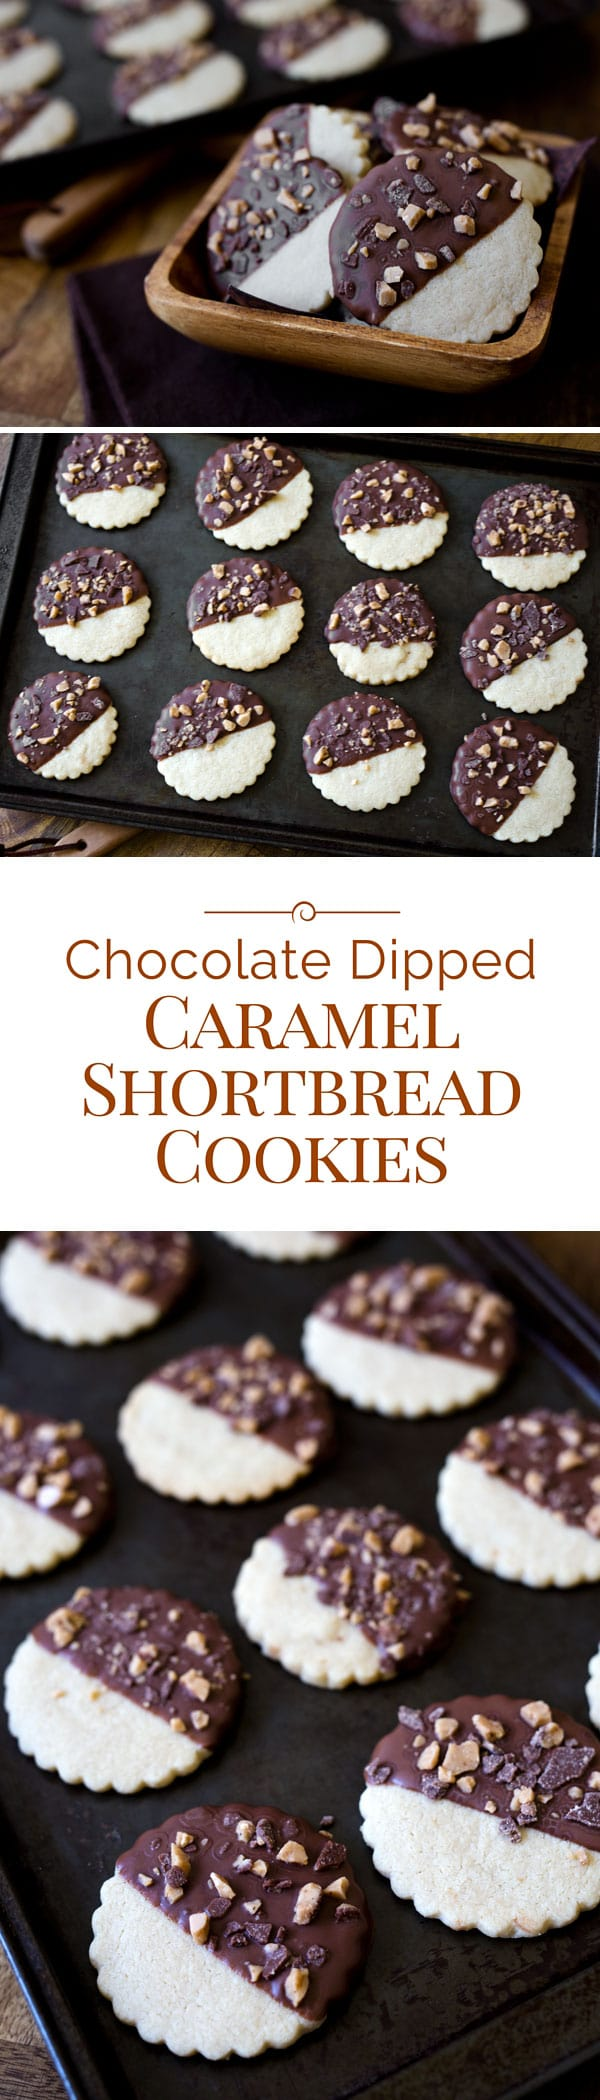 Chocolate-Covered-Caramel-Shortbread-Cookies-Collage-Barbara-Bakes